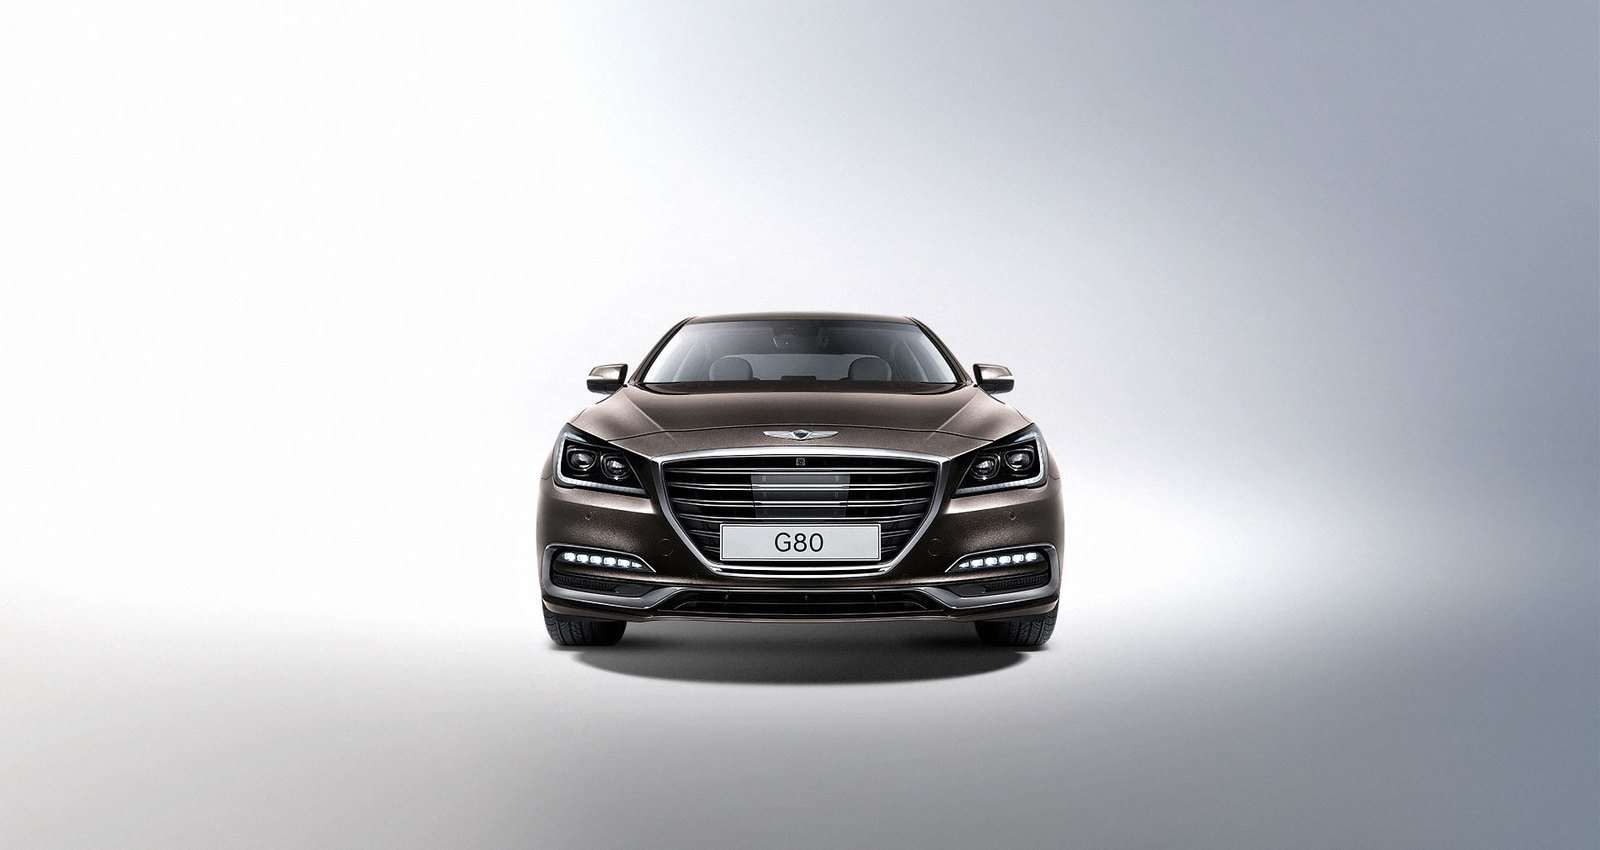 2017 genesis g80 picture 678321 car review top speed. Black Bedroom Furniture Sets. Home Design Ideas